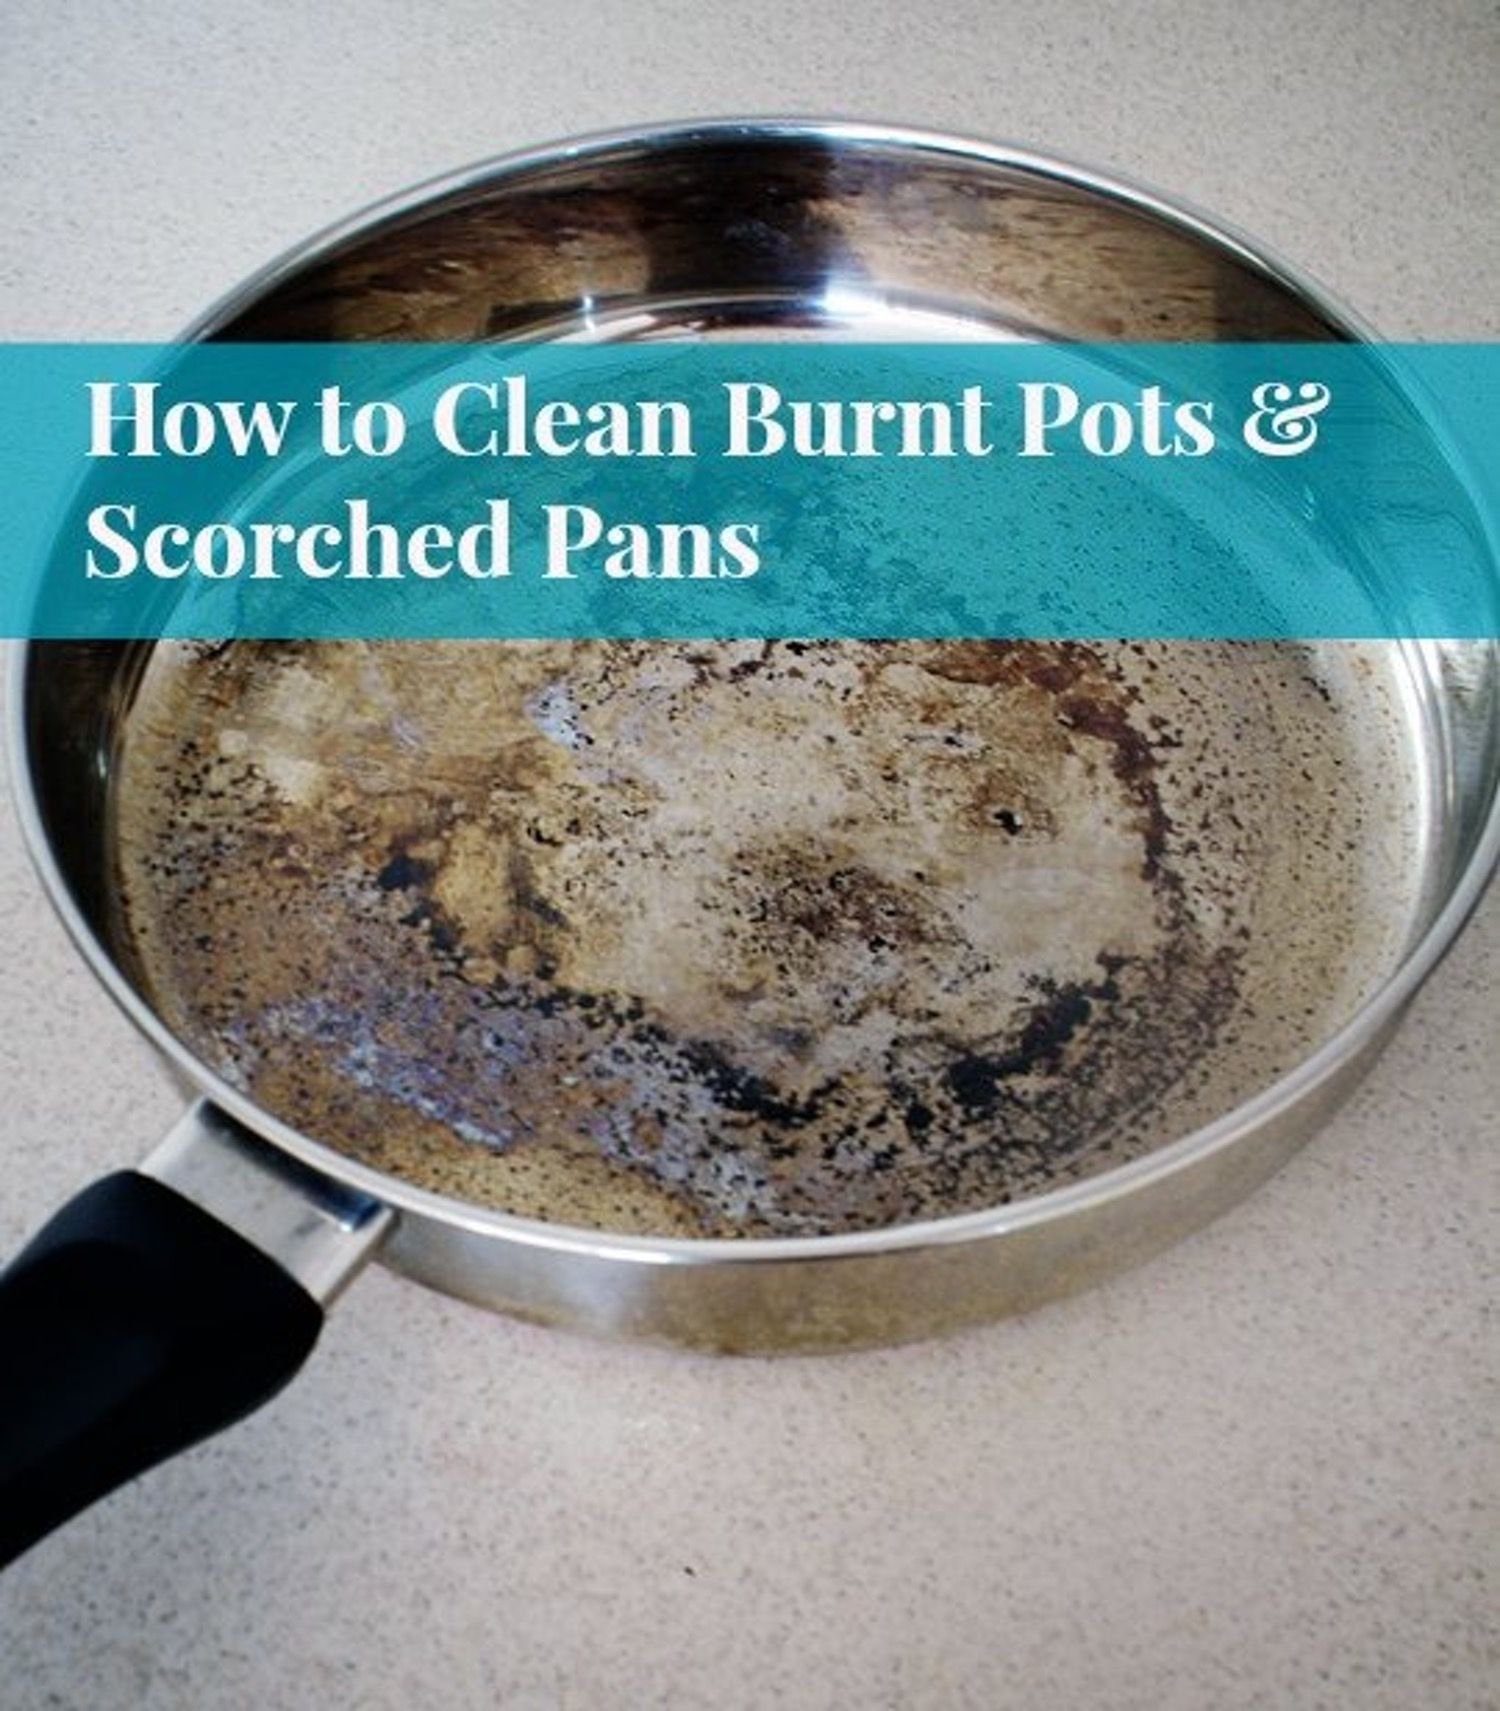 How To Clean Burnt Pots & Scorched Pans | Cleaning burnt pots ...